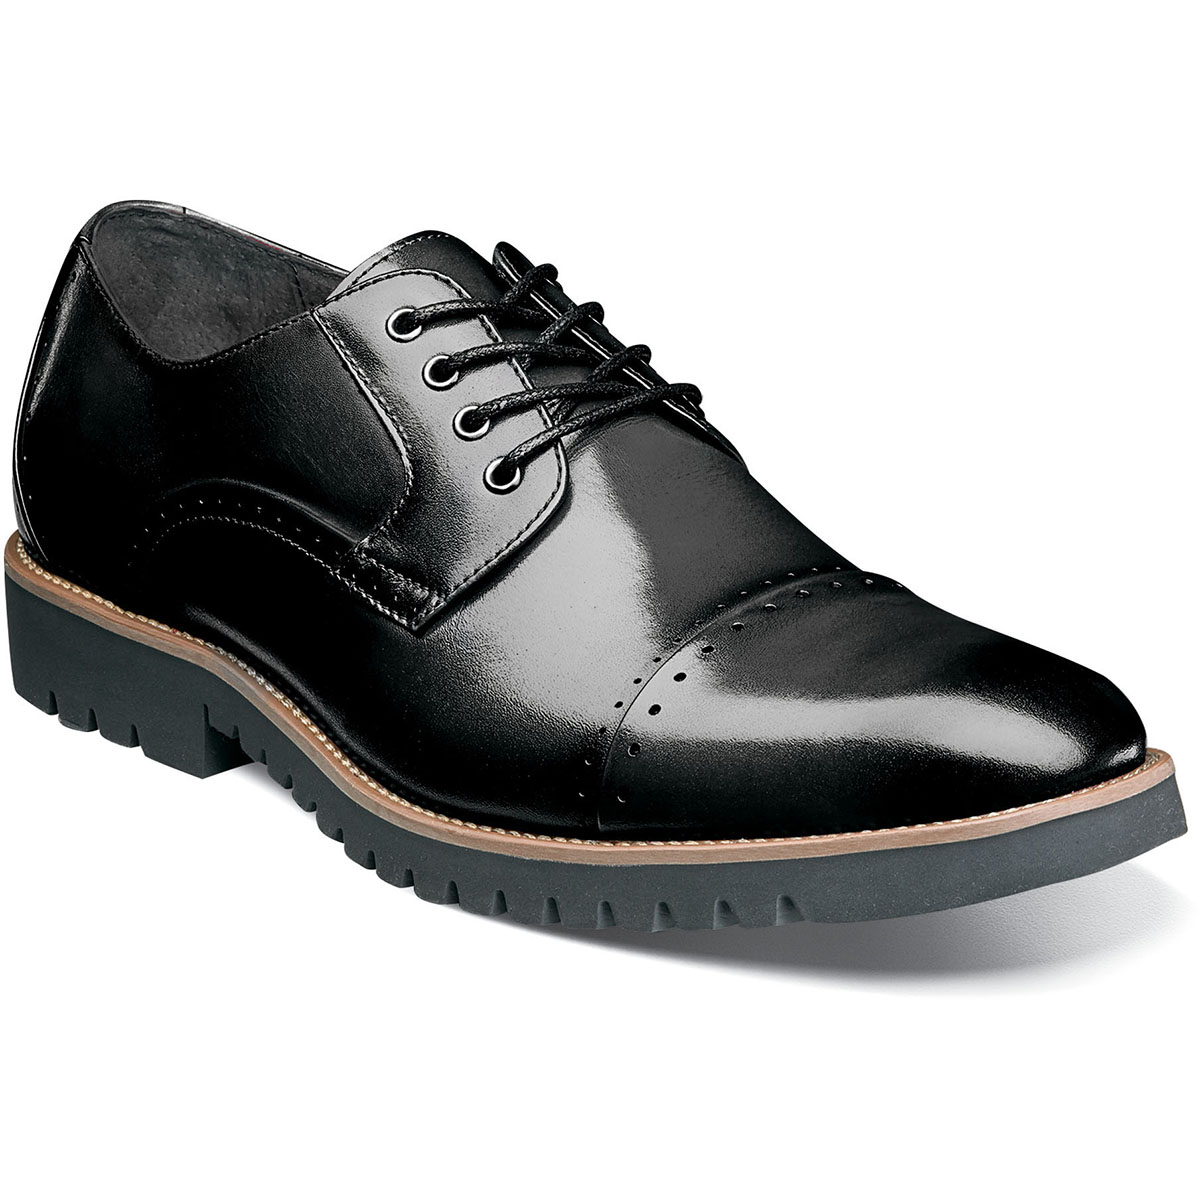 Stacy Adams Barcliff Lightweight Cap Toe Oxford